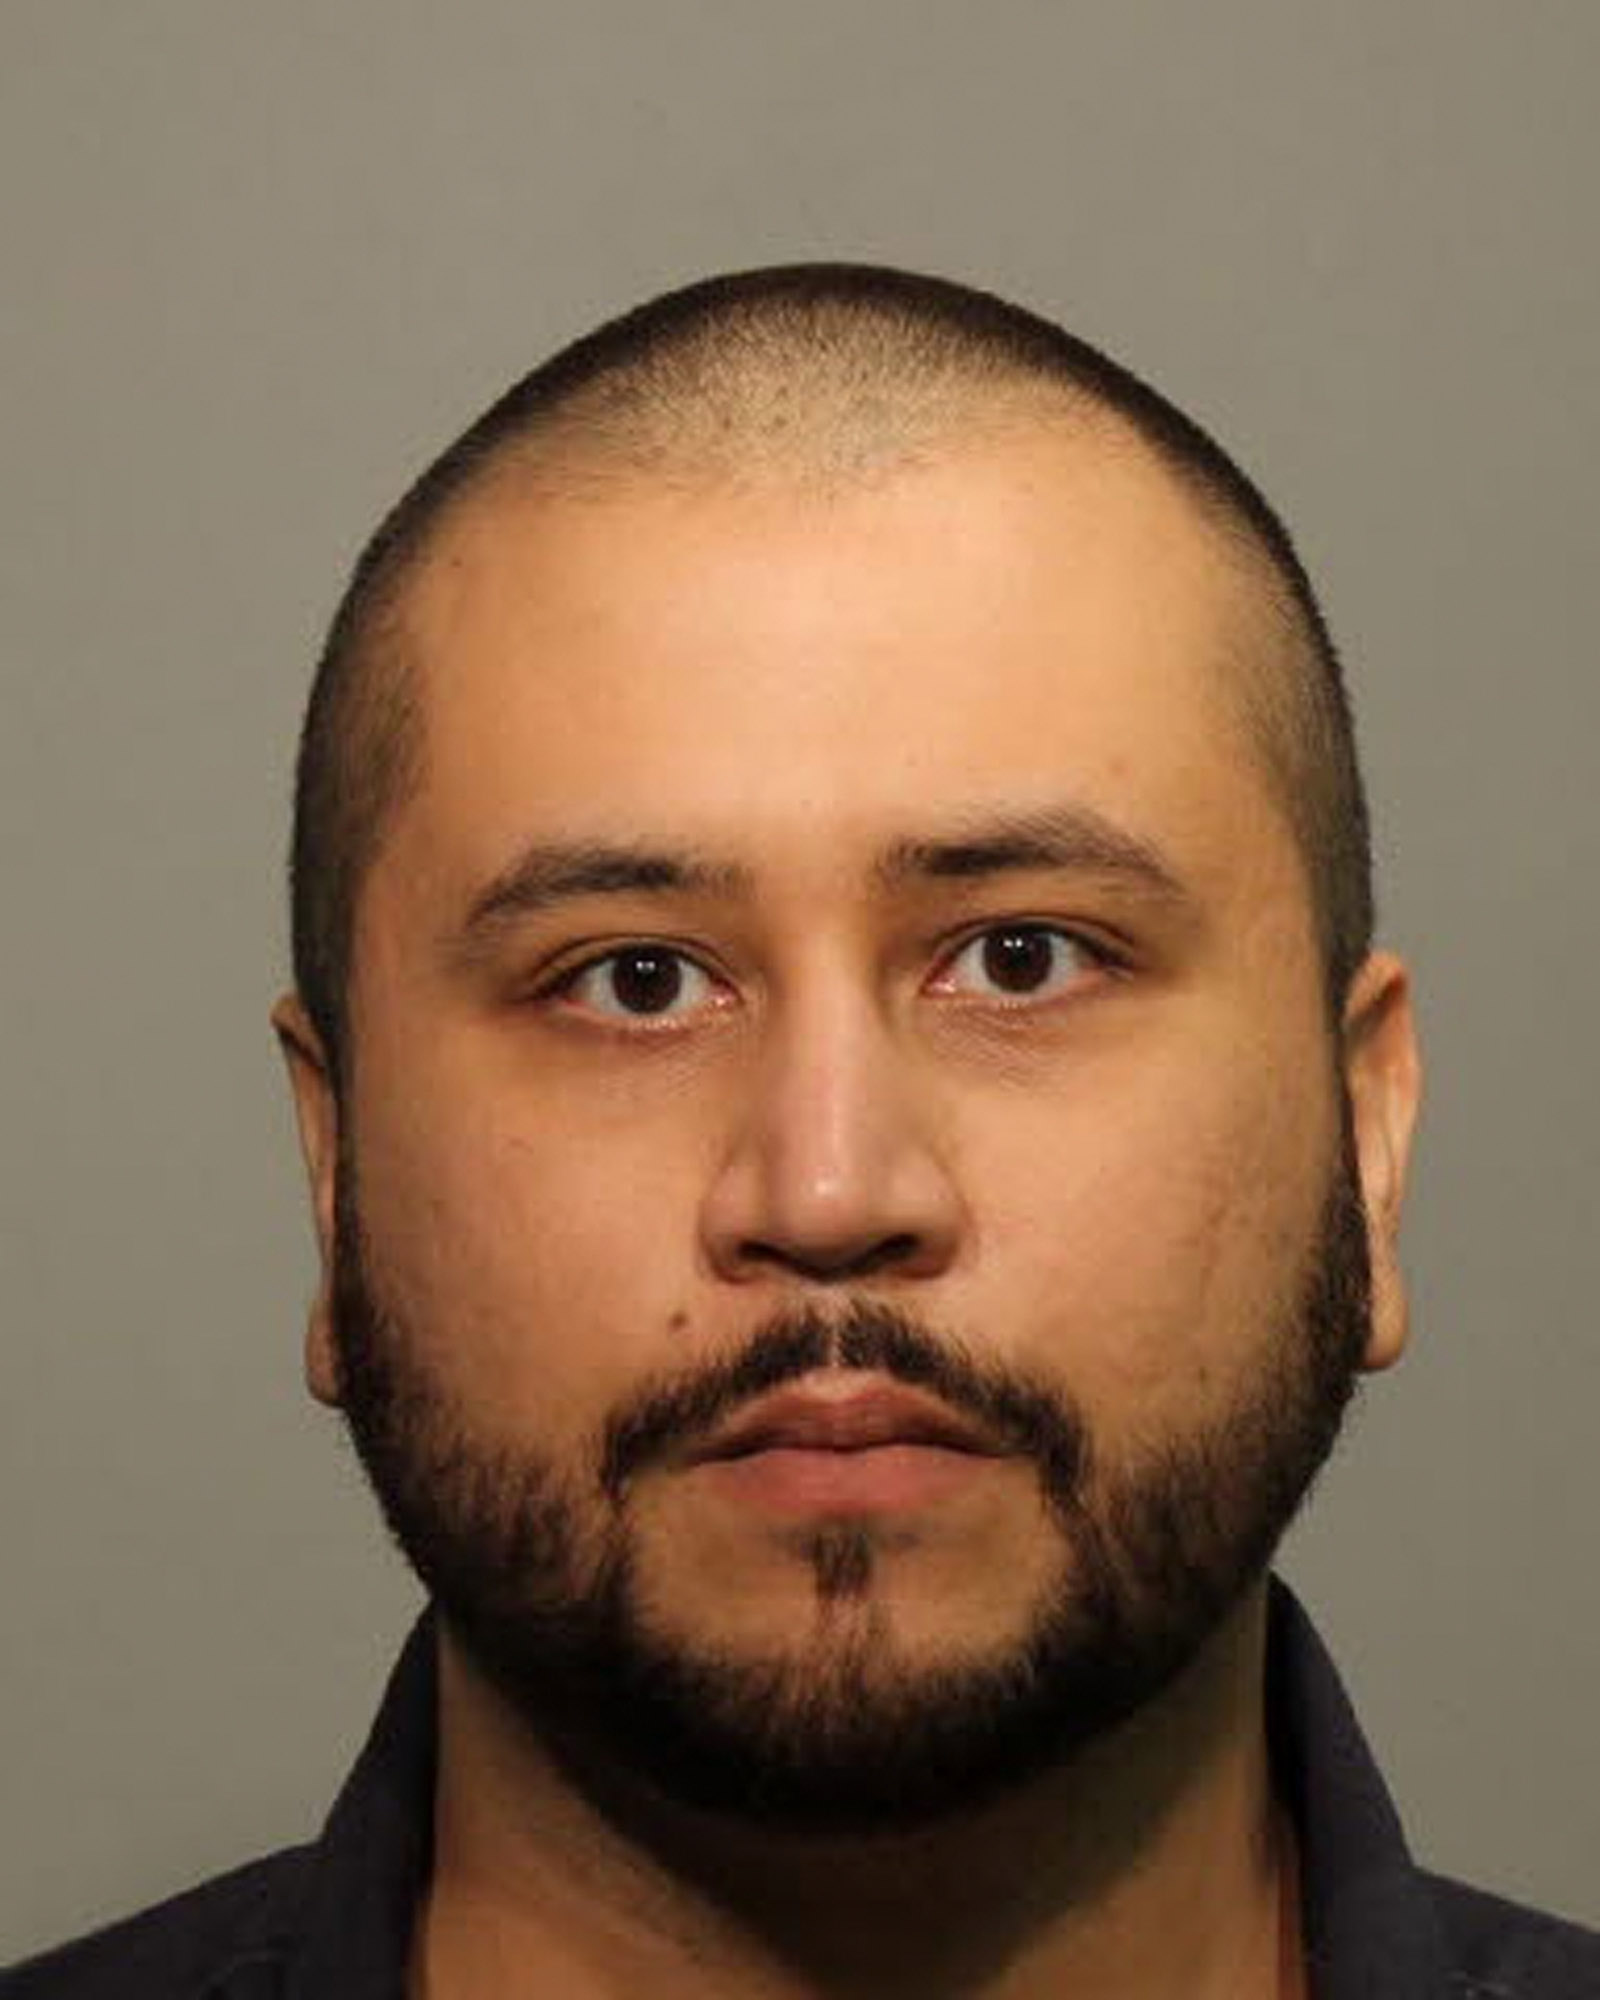 George Zimmerman poses for a mug shot photo after being arrested and booked into jail at the John Polk Correctional Facility in Sanford, Fla. on January 9, 2015.